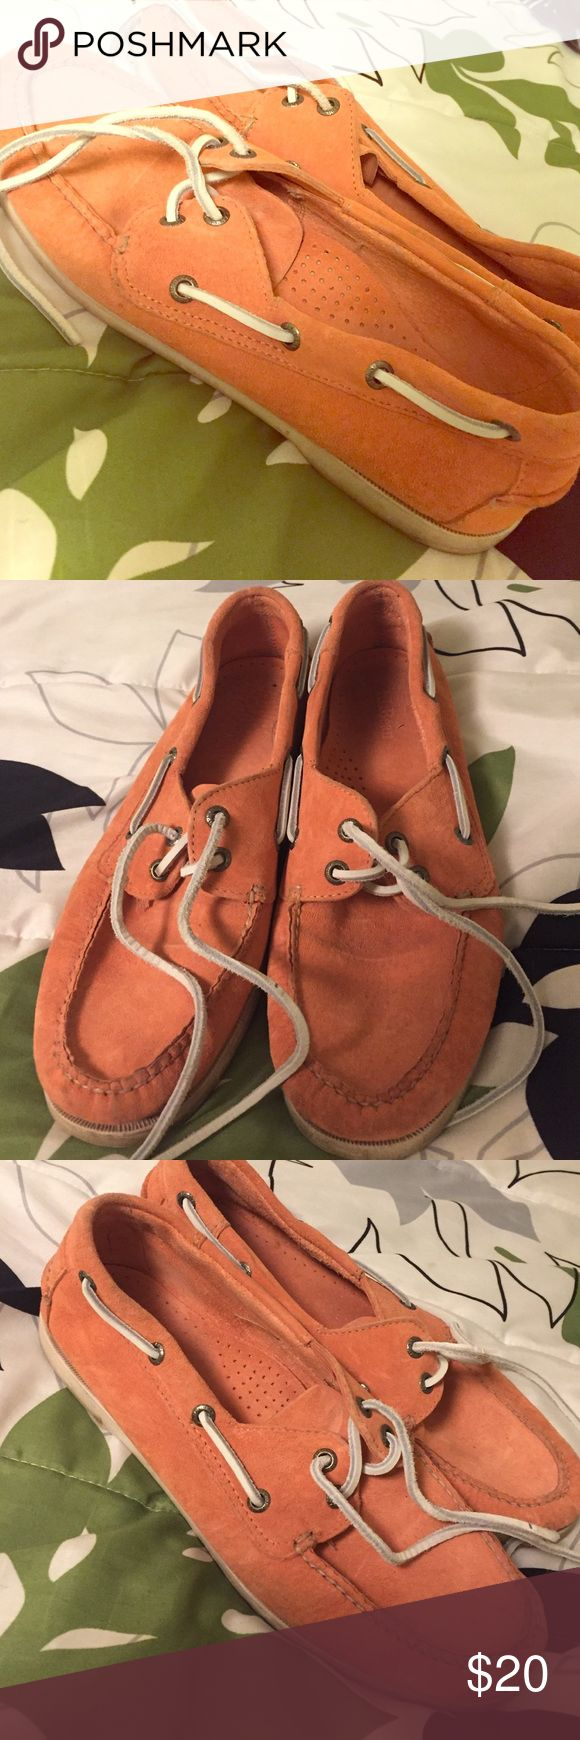 Orange LL Bean boat shoes 9/10 condition. Worn twice! L.L. Bean Shoes Flats & Loafers